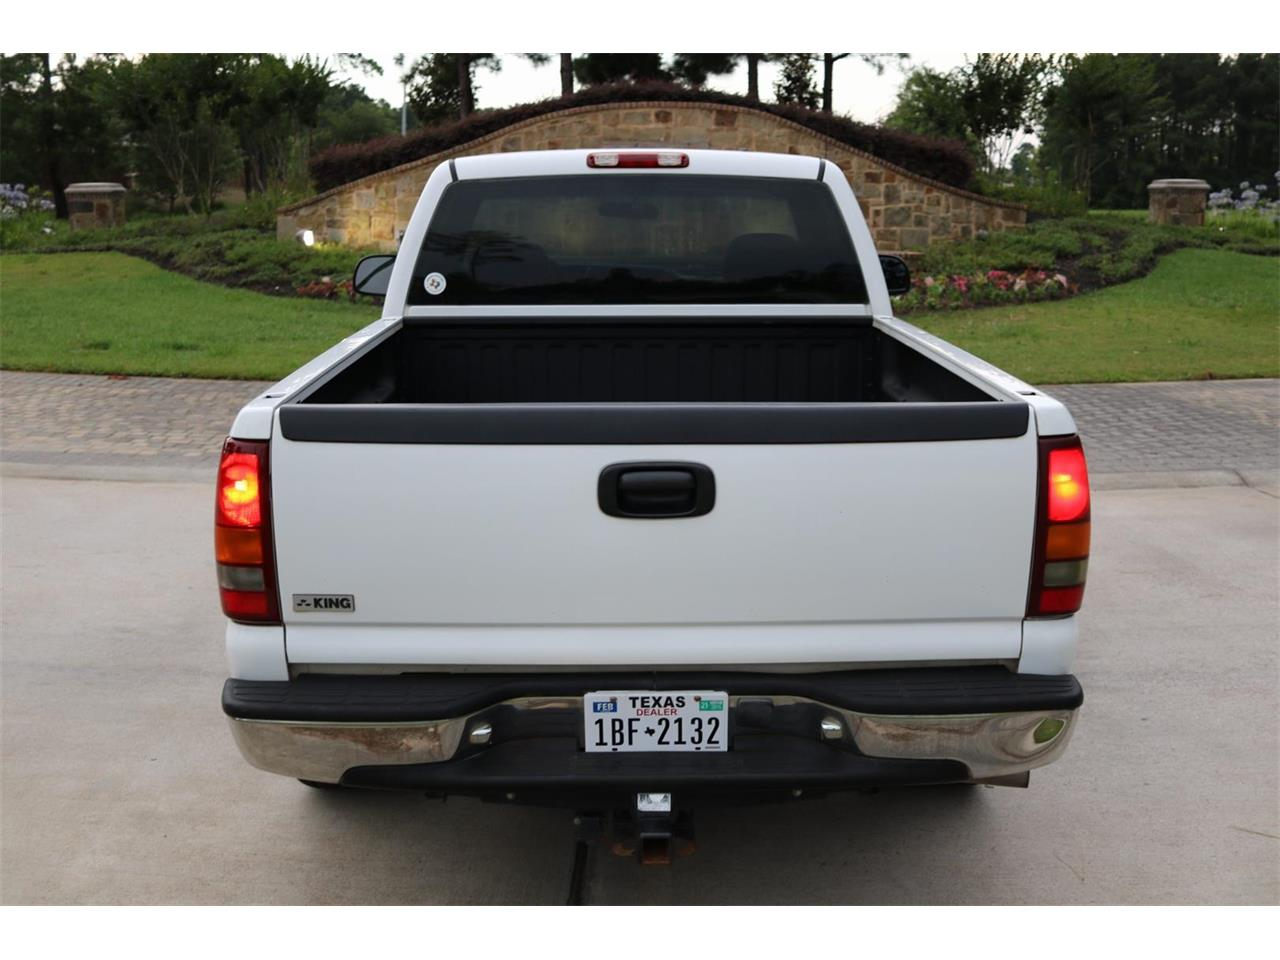 Large Picture of '00 Chevrolet Silverado - $9,900.00 - PS94